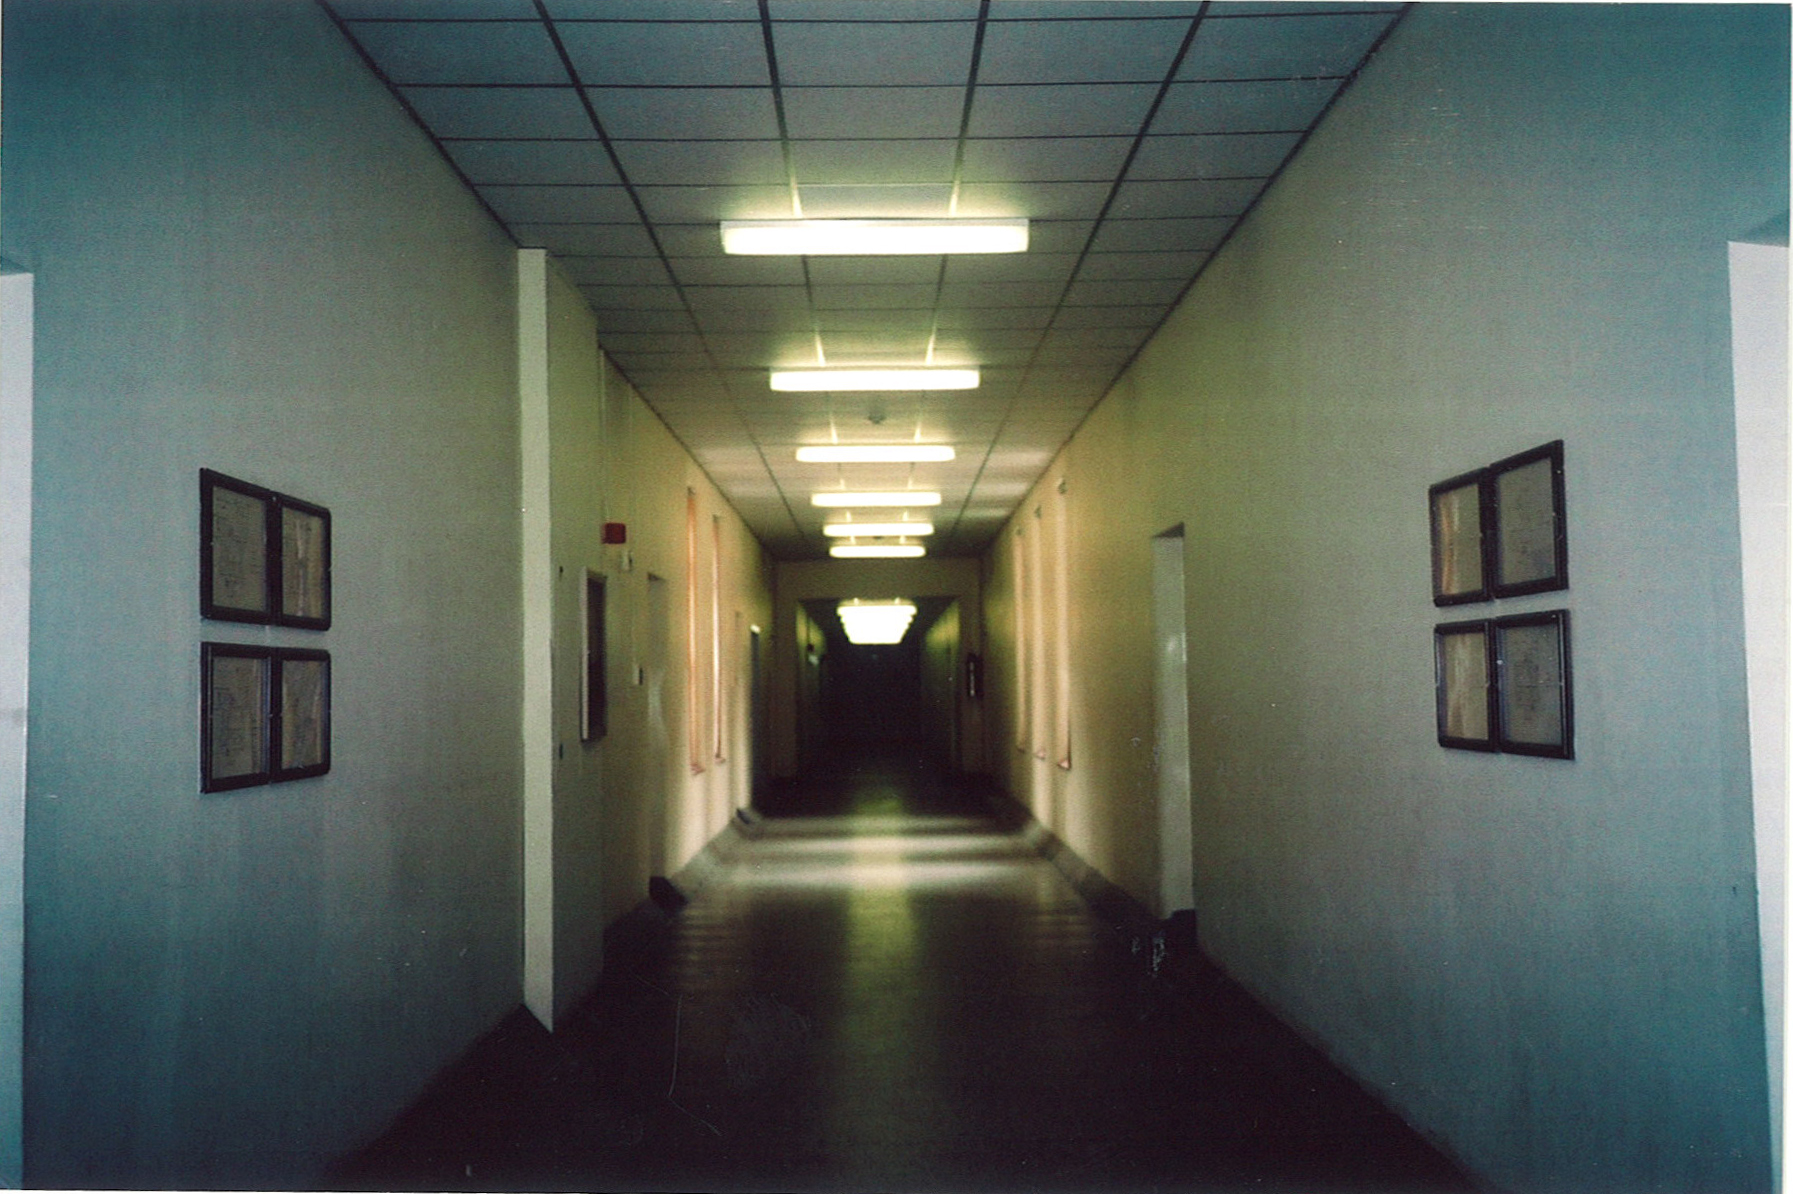 Entrance Hallway:  Once inside, child and parent alike entered a small vestibule where parents met with staff and said goodbye. Before the child a long corridor stretched away. Photo: Thelma Wheatley.